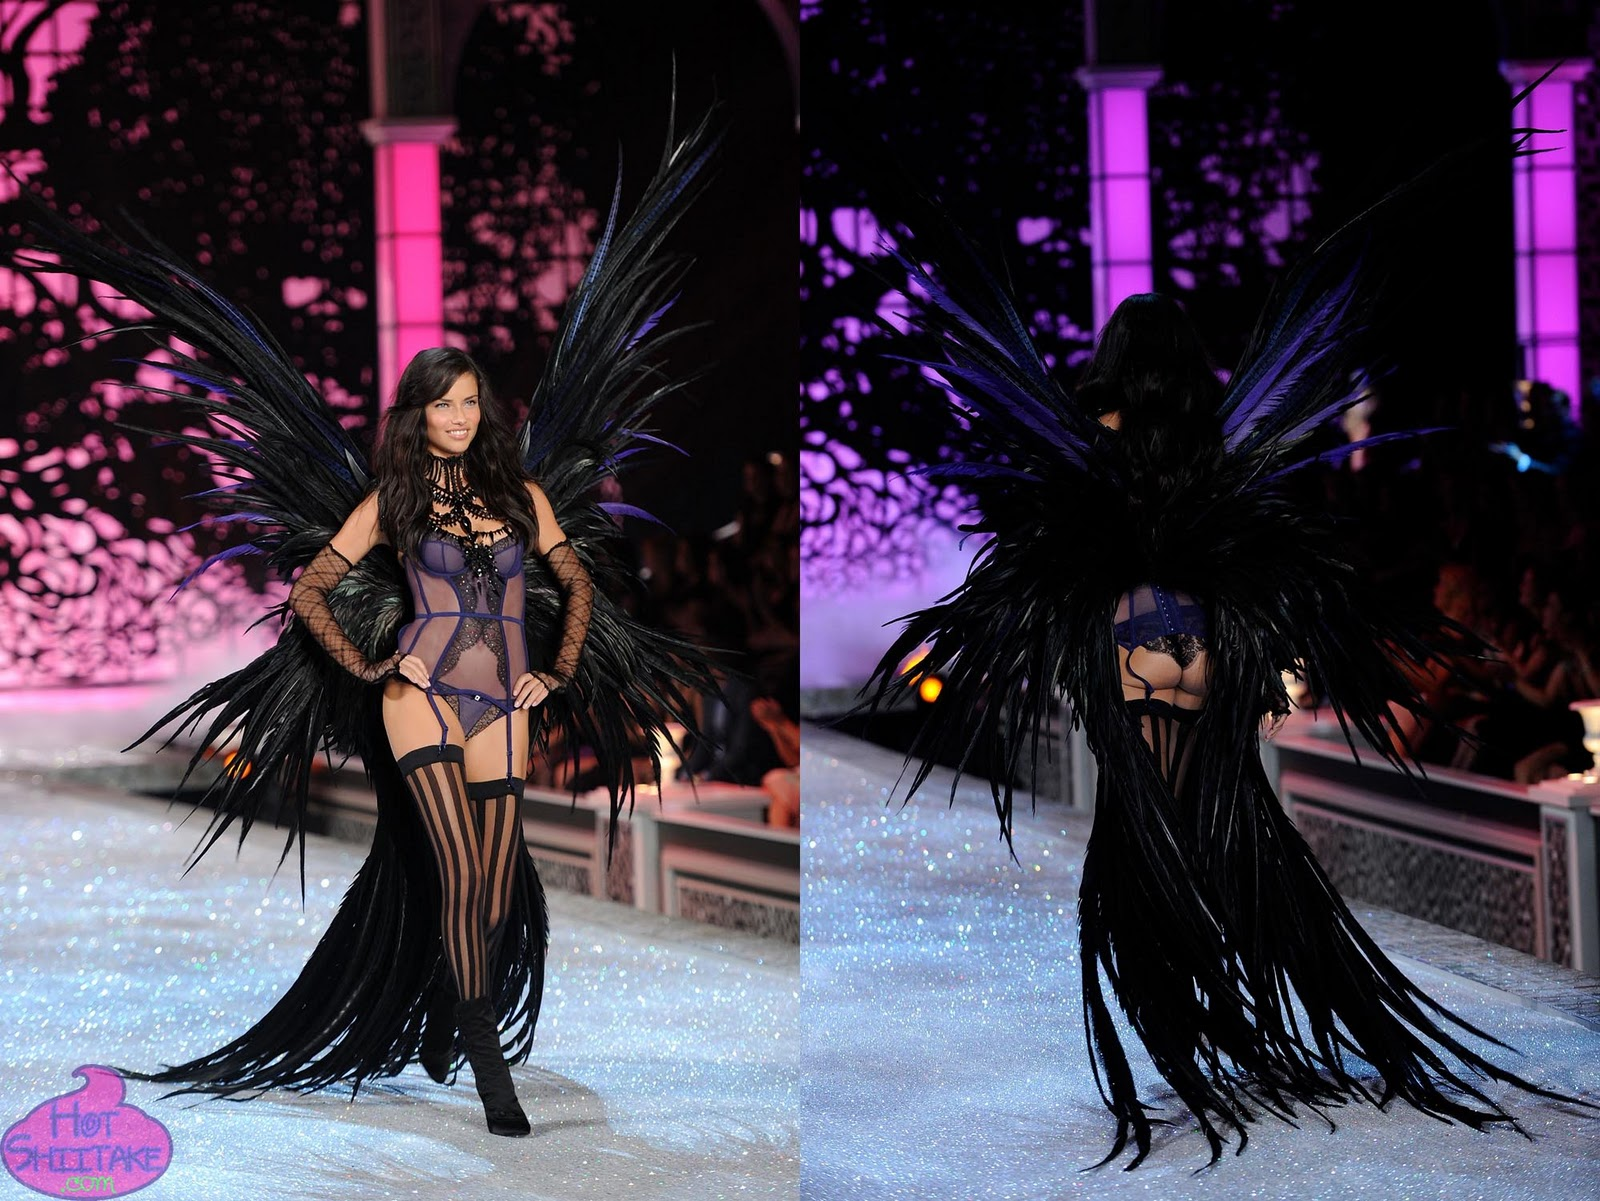 Adriana Lima Butt Victorias Secret Fashion Show 2011